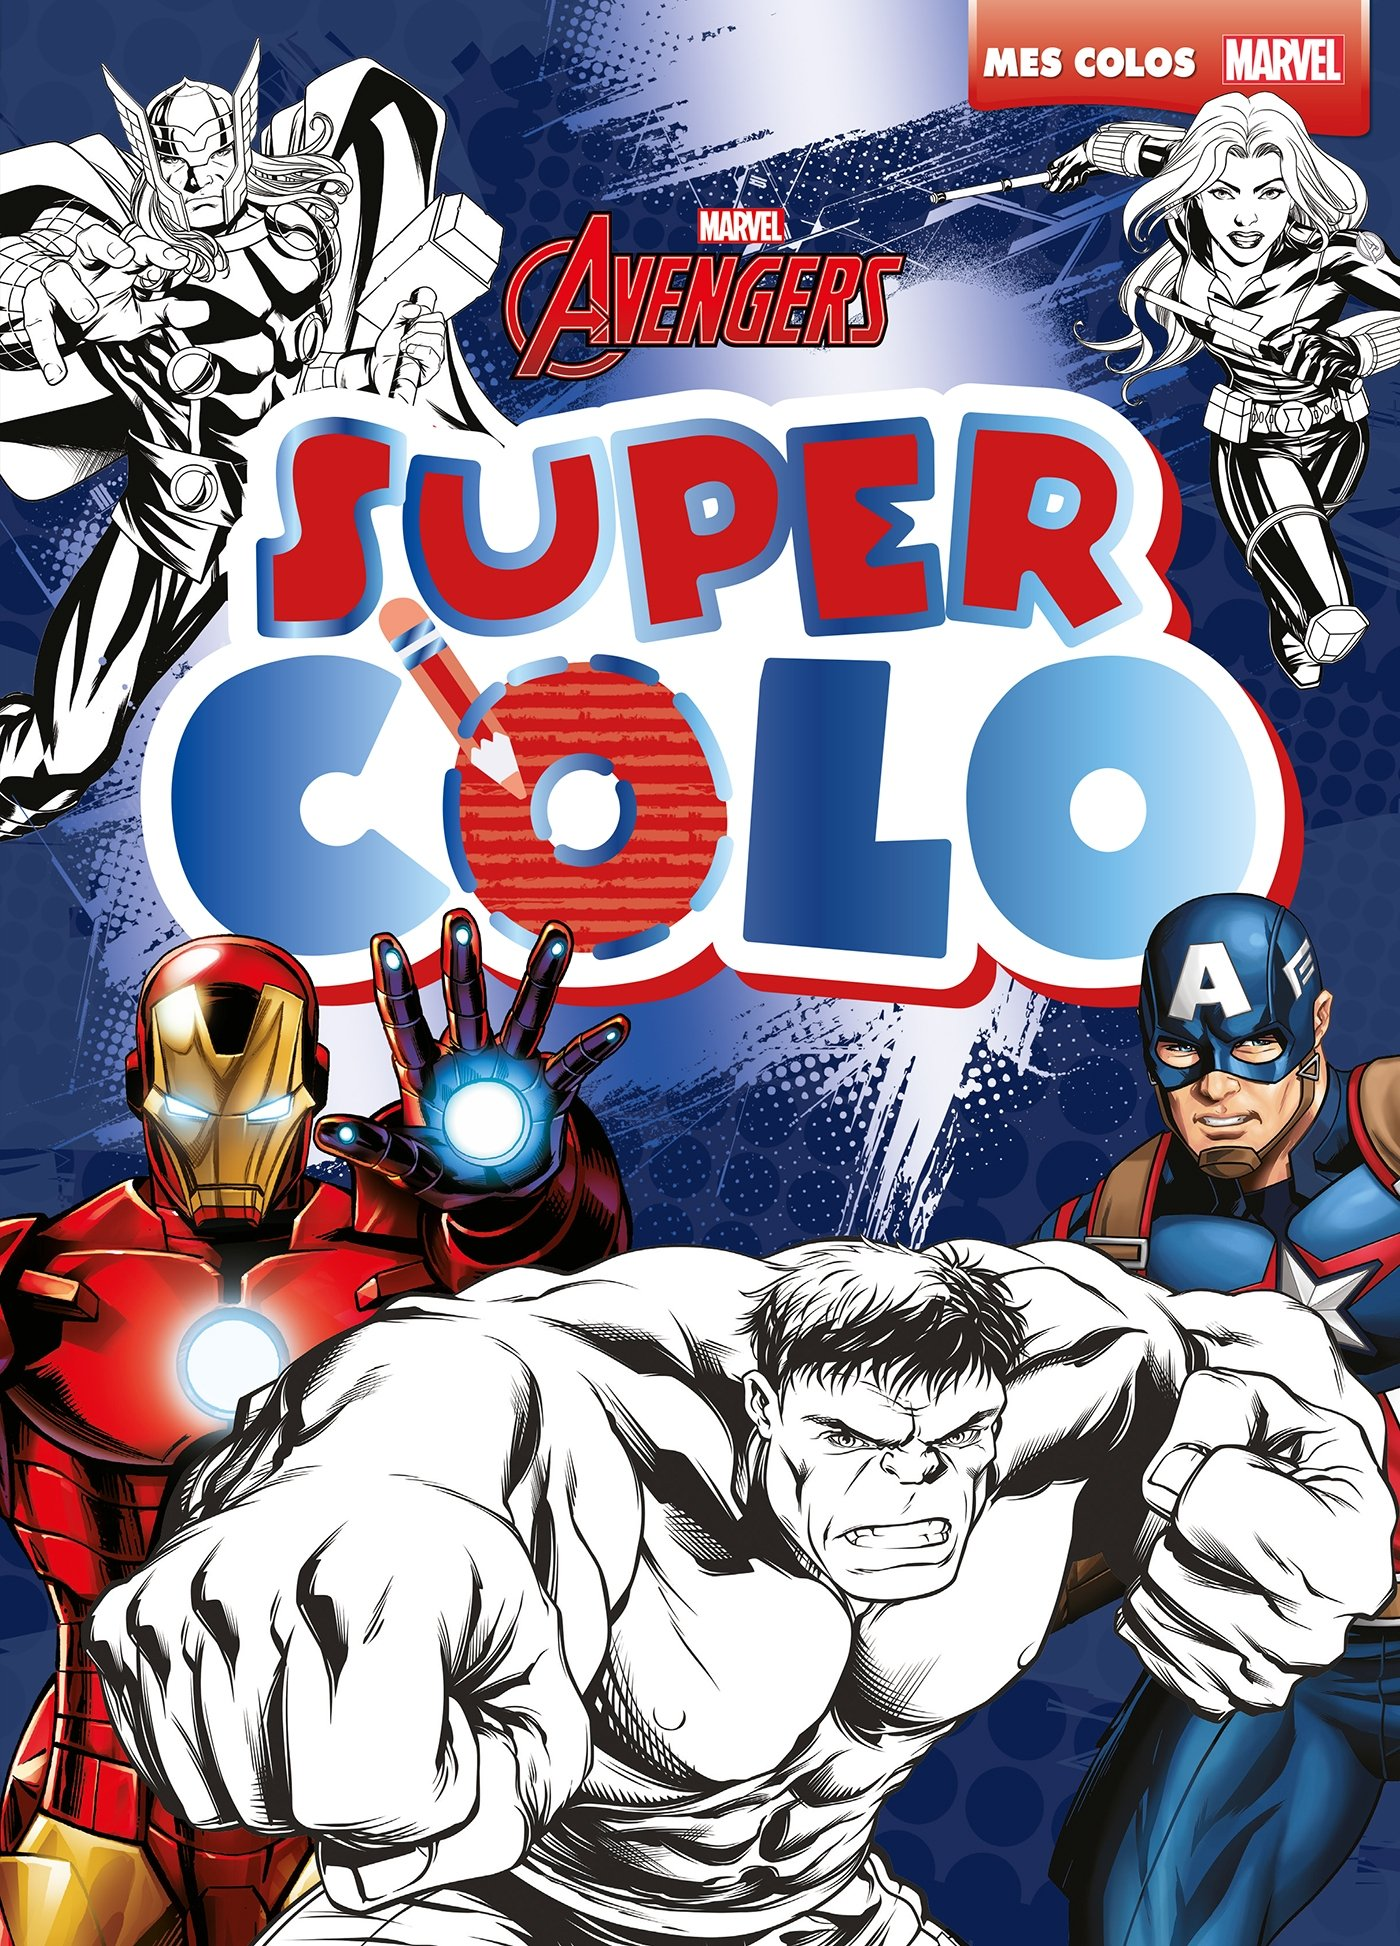 Avengers Assemble Marvel Super Colo Hjd Coloriages French